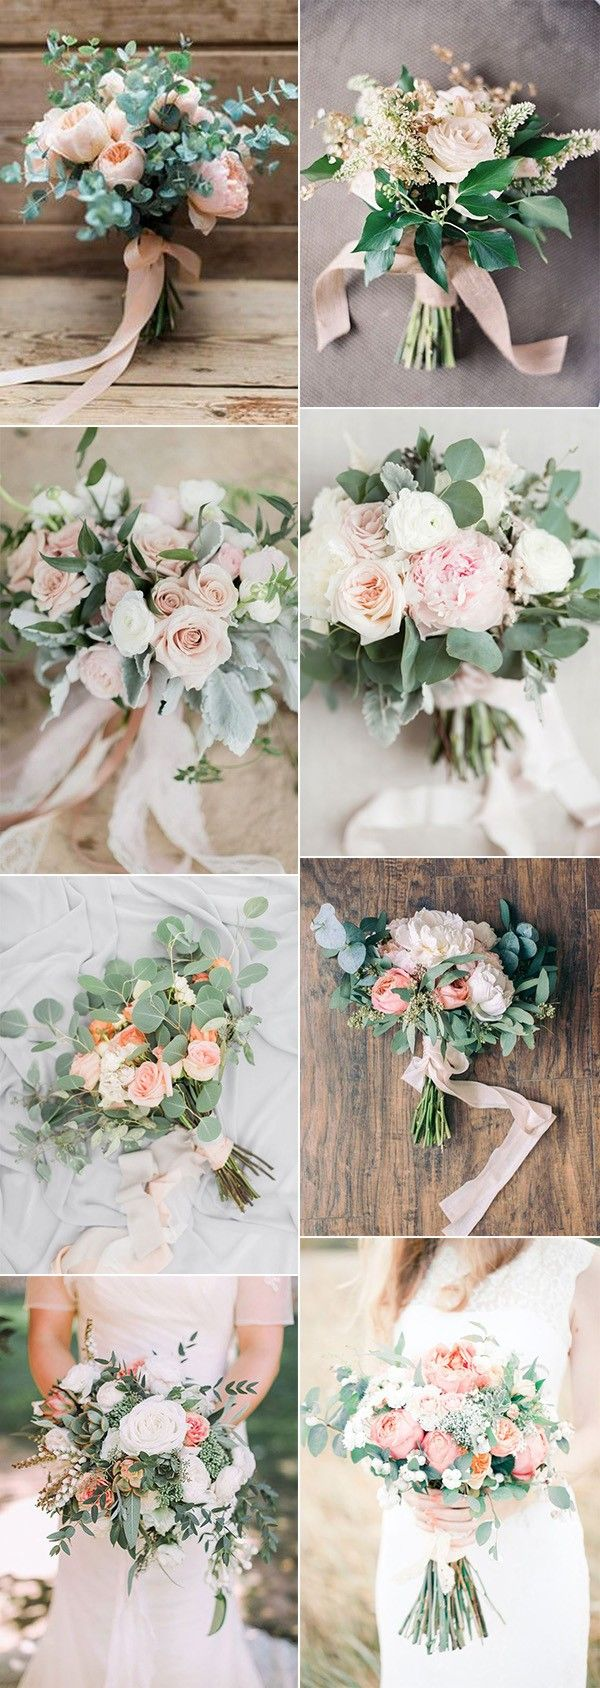 25 Brilliant Wedding Bouquets for Spring/Summer 2020 #pinkbridalbouquets